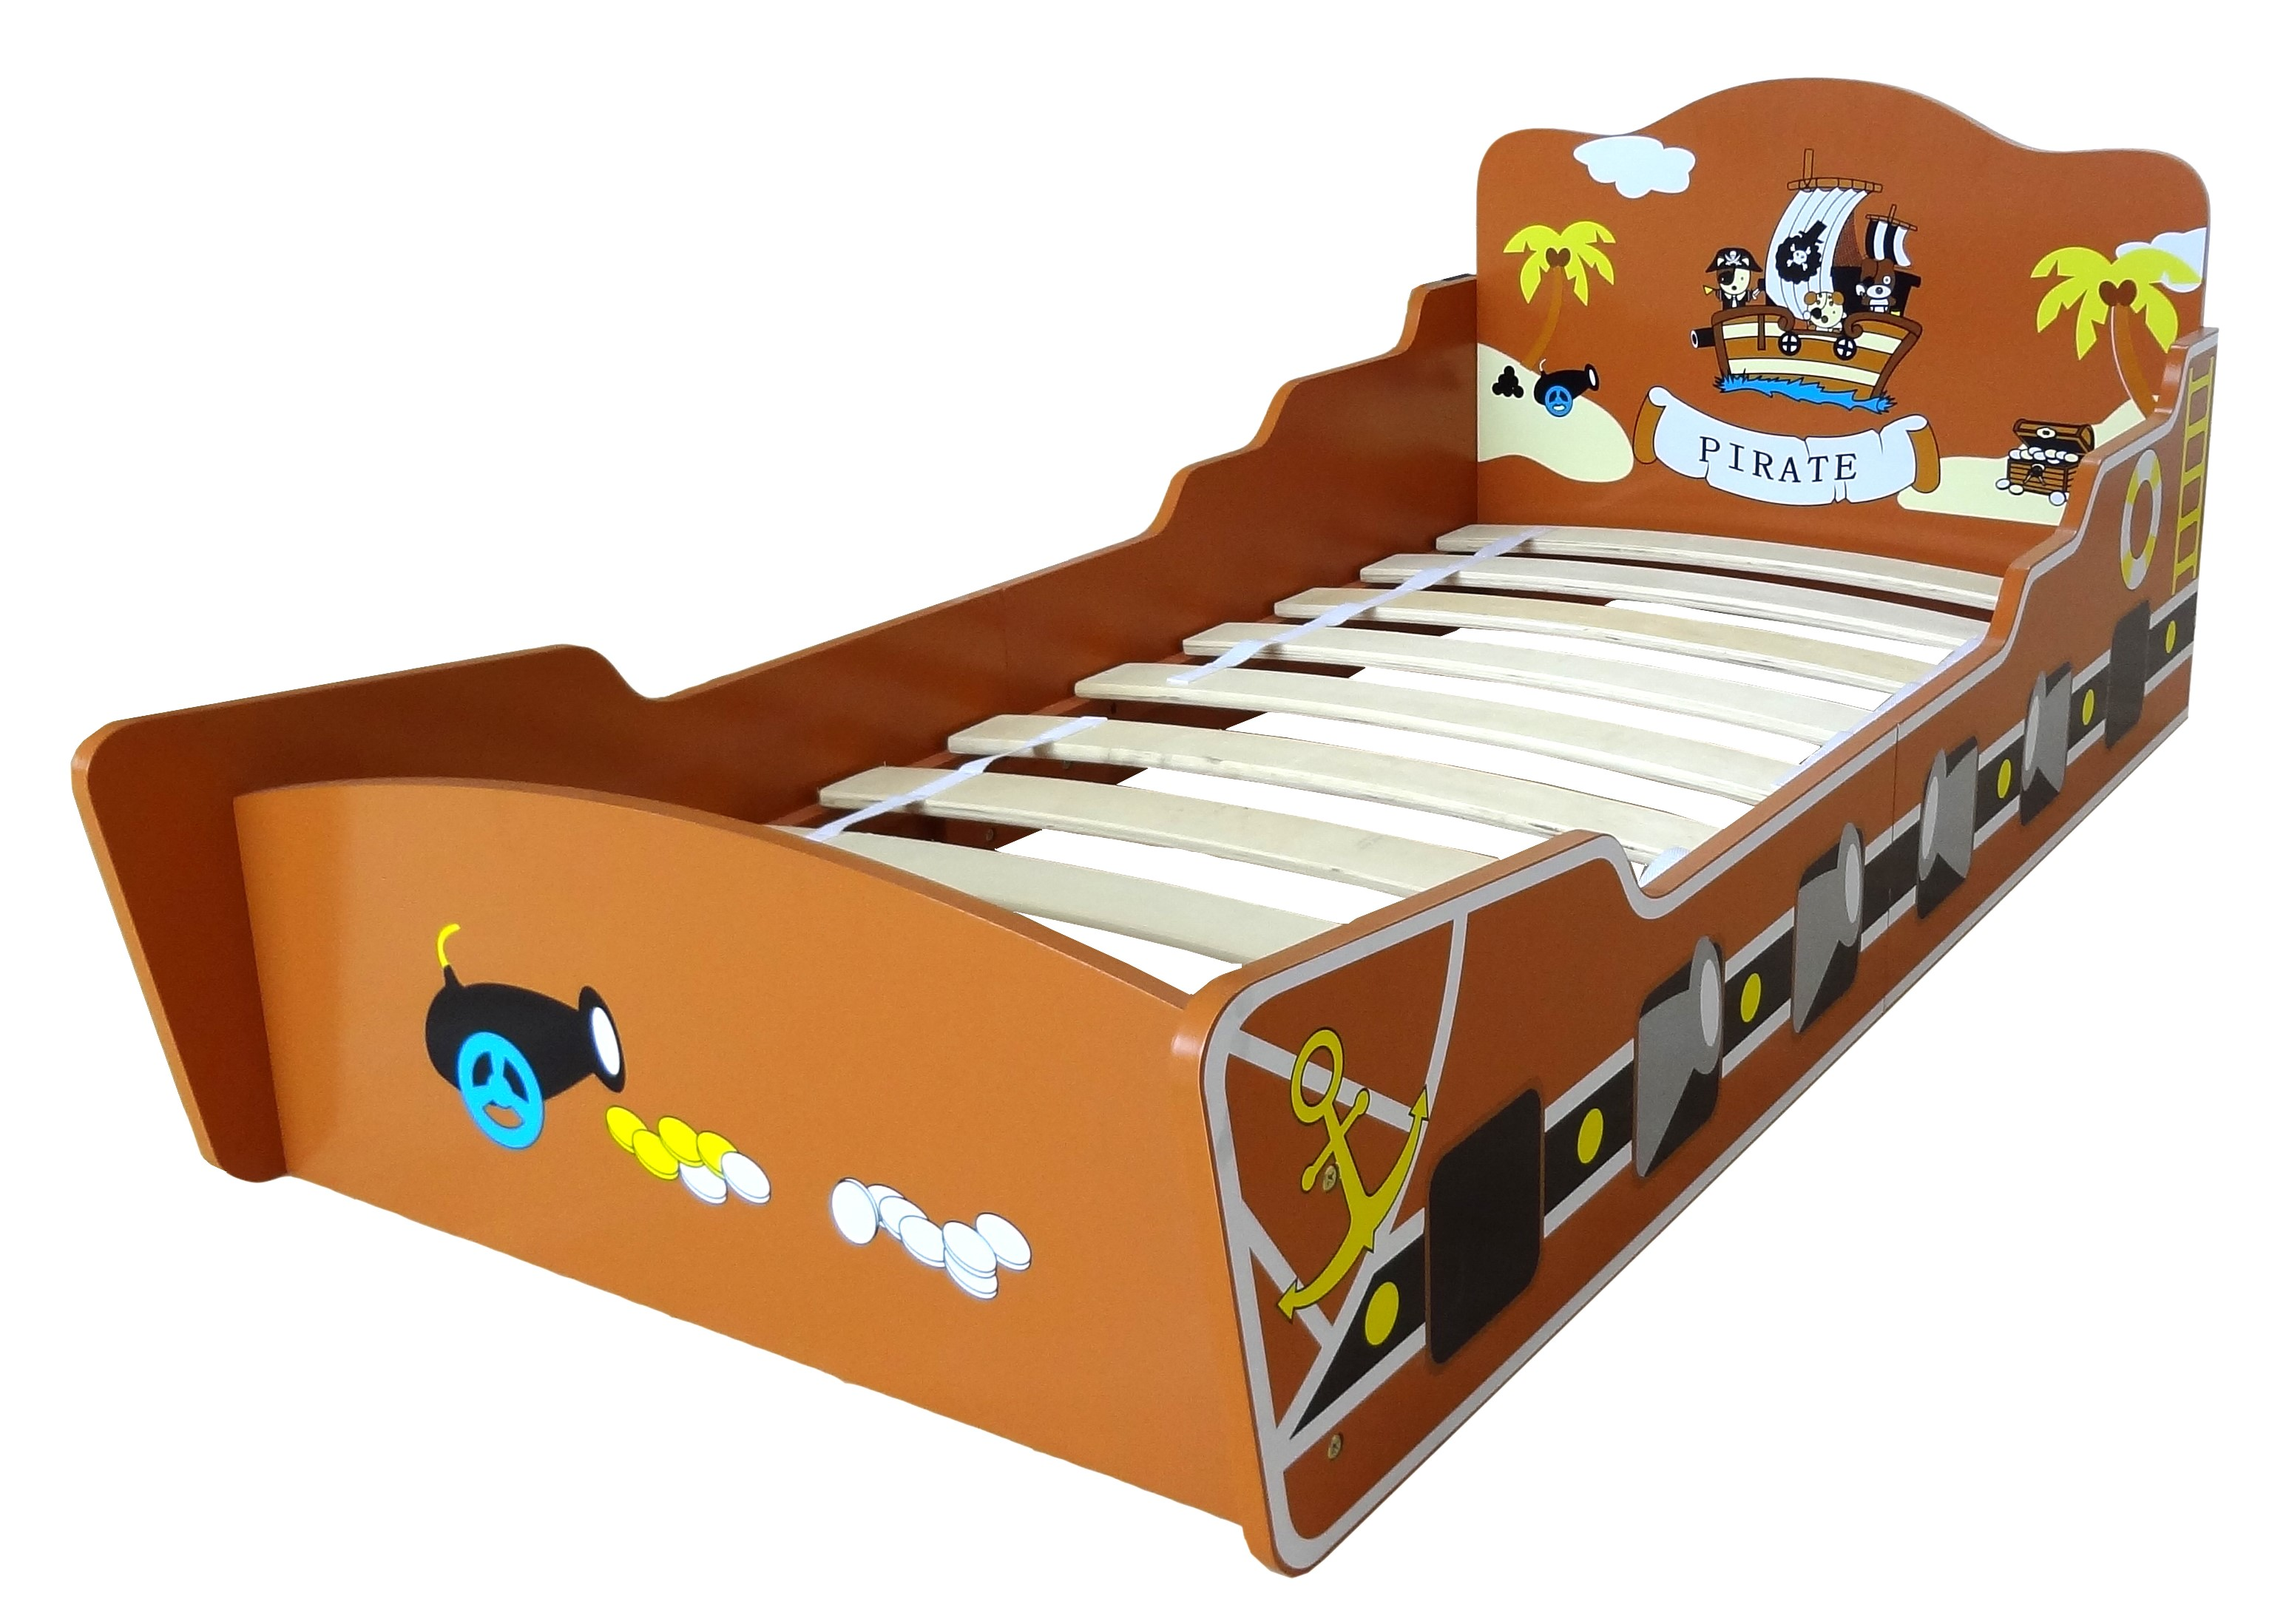 kiddi style pirate boat bed kiddy products. Black Bedroom Furniture Sets. Home Design Ideas